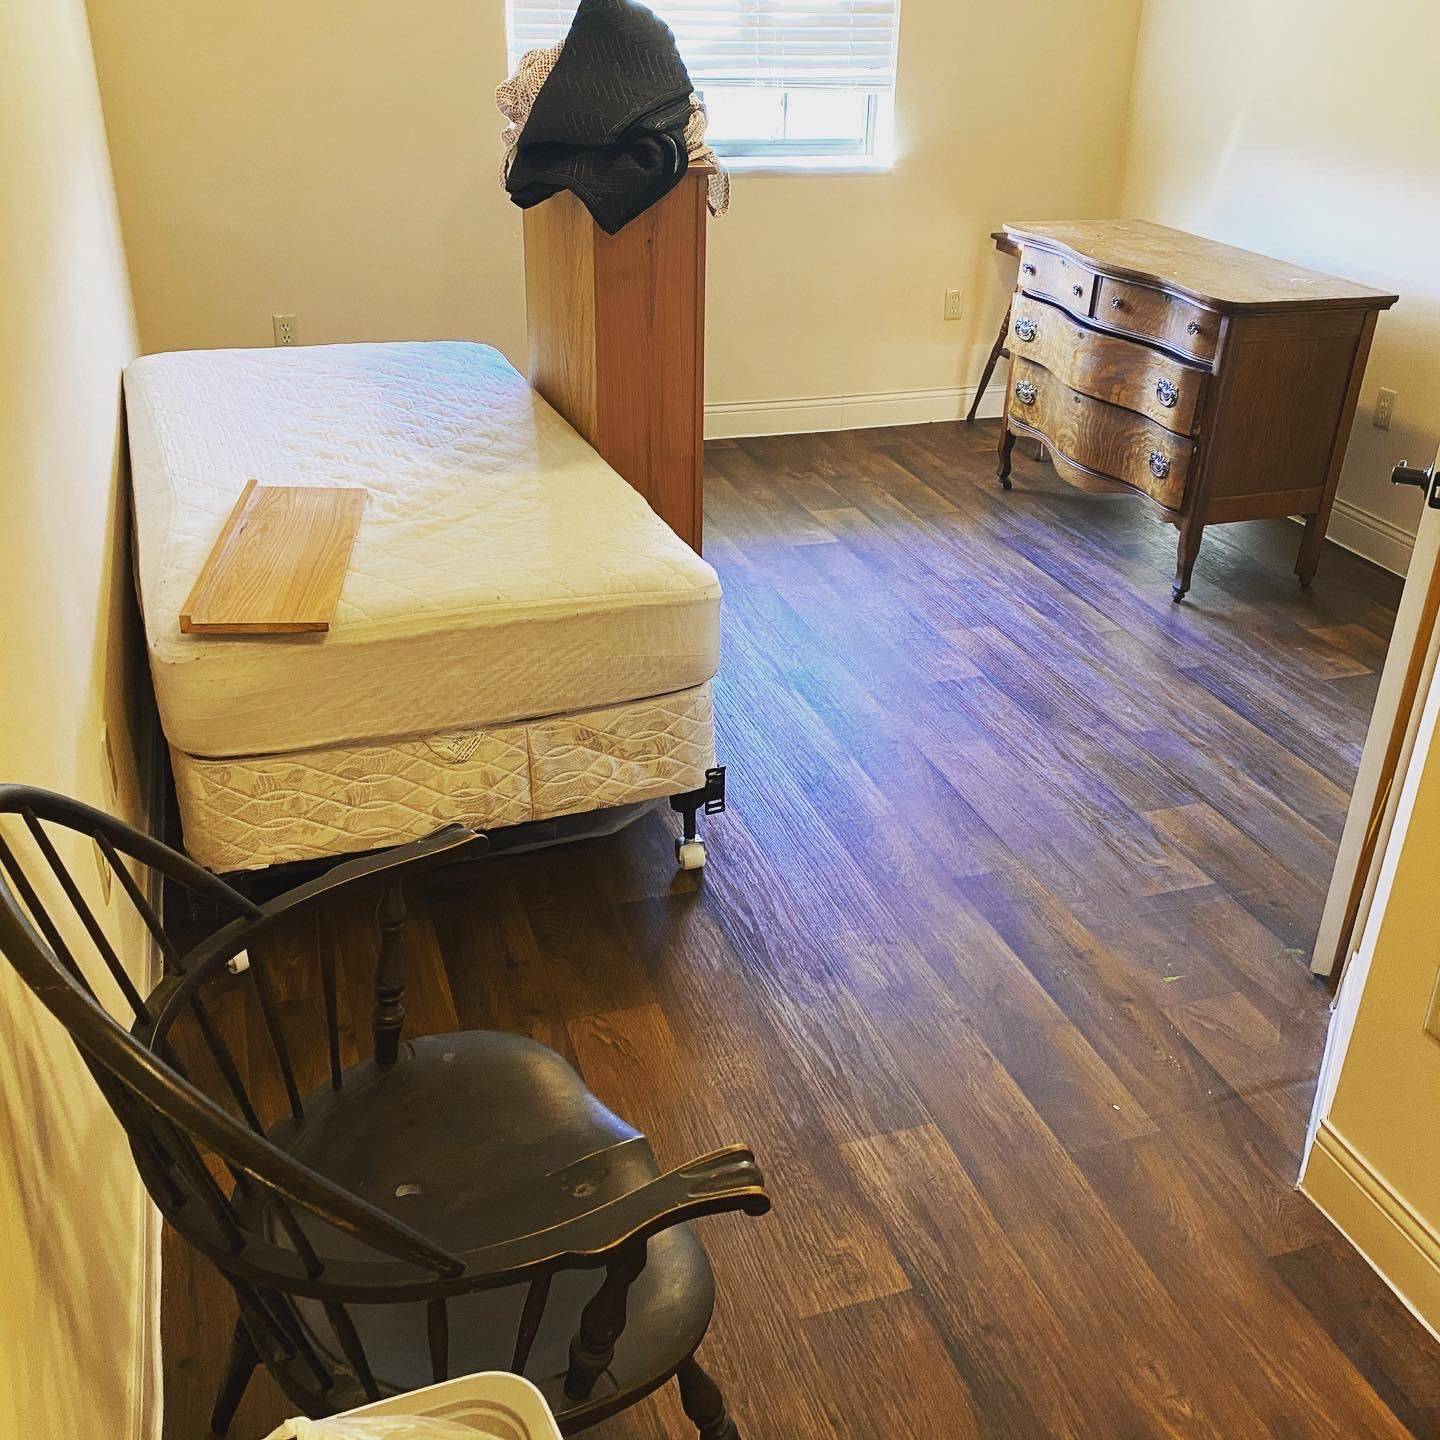 shows furniture about to be removed from home